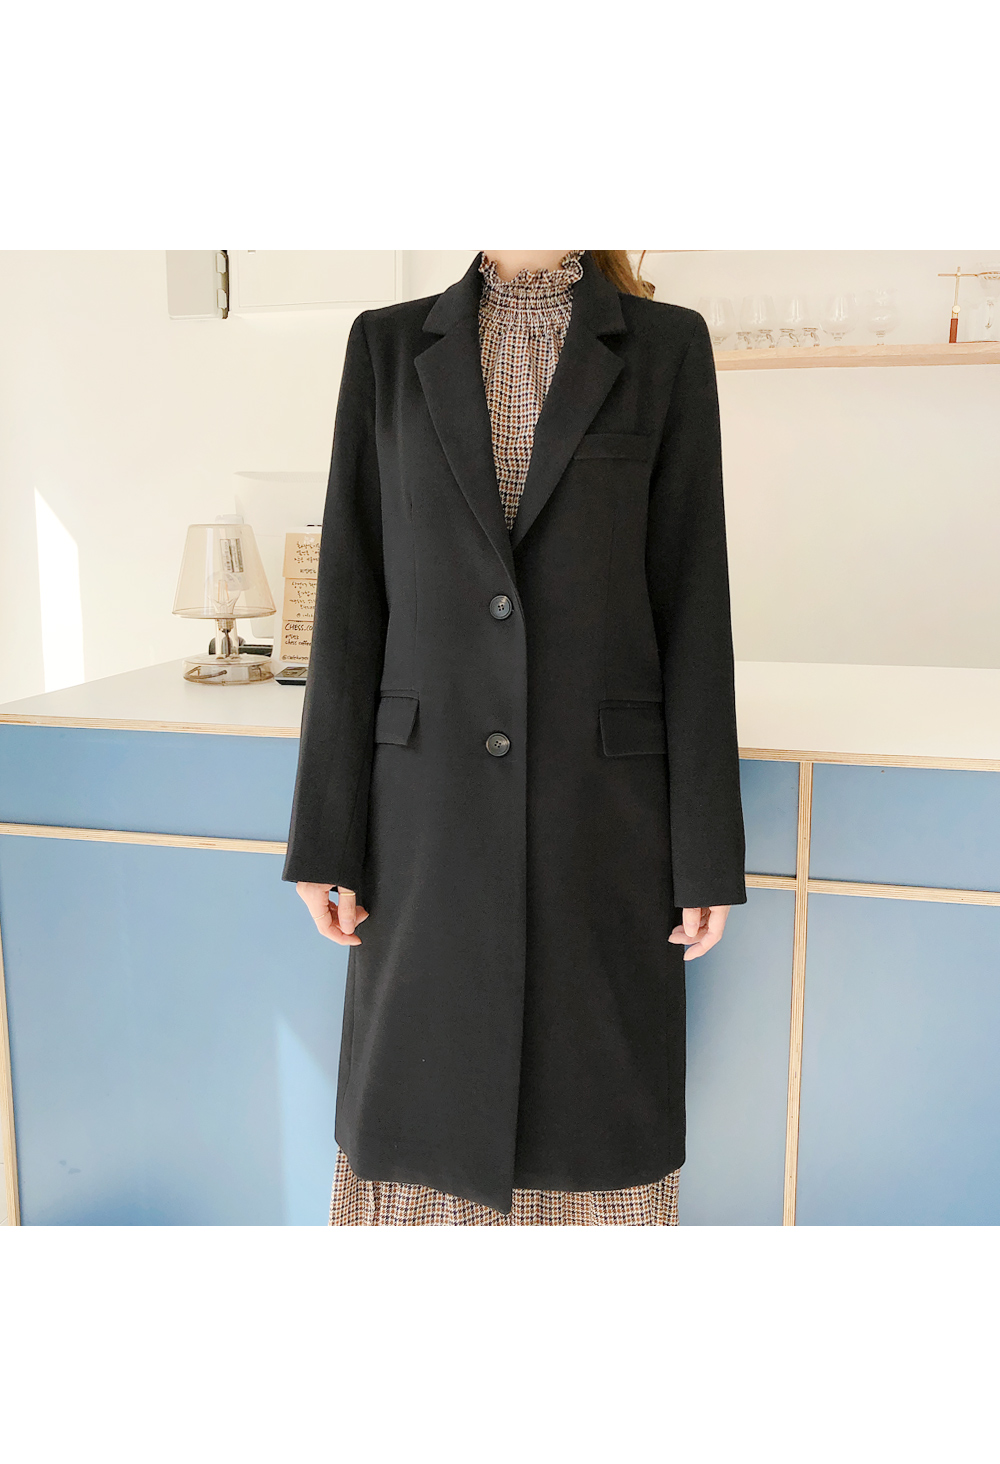 Her life pit long coat